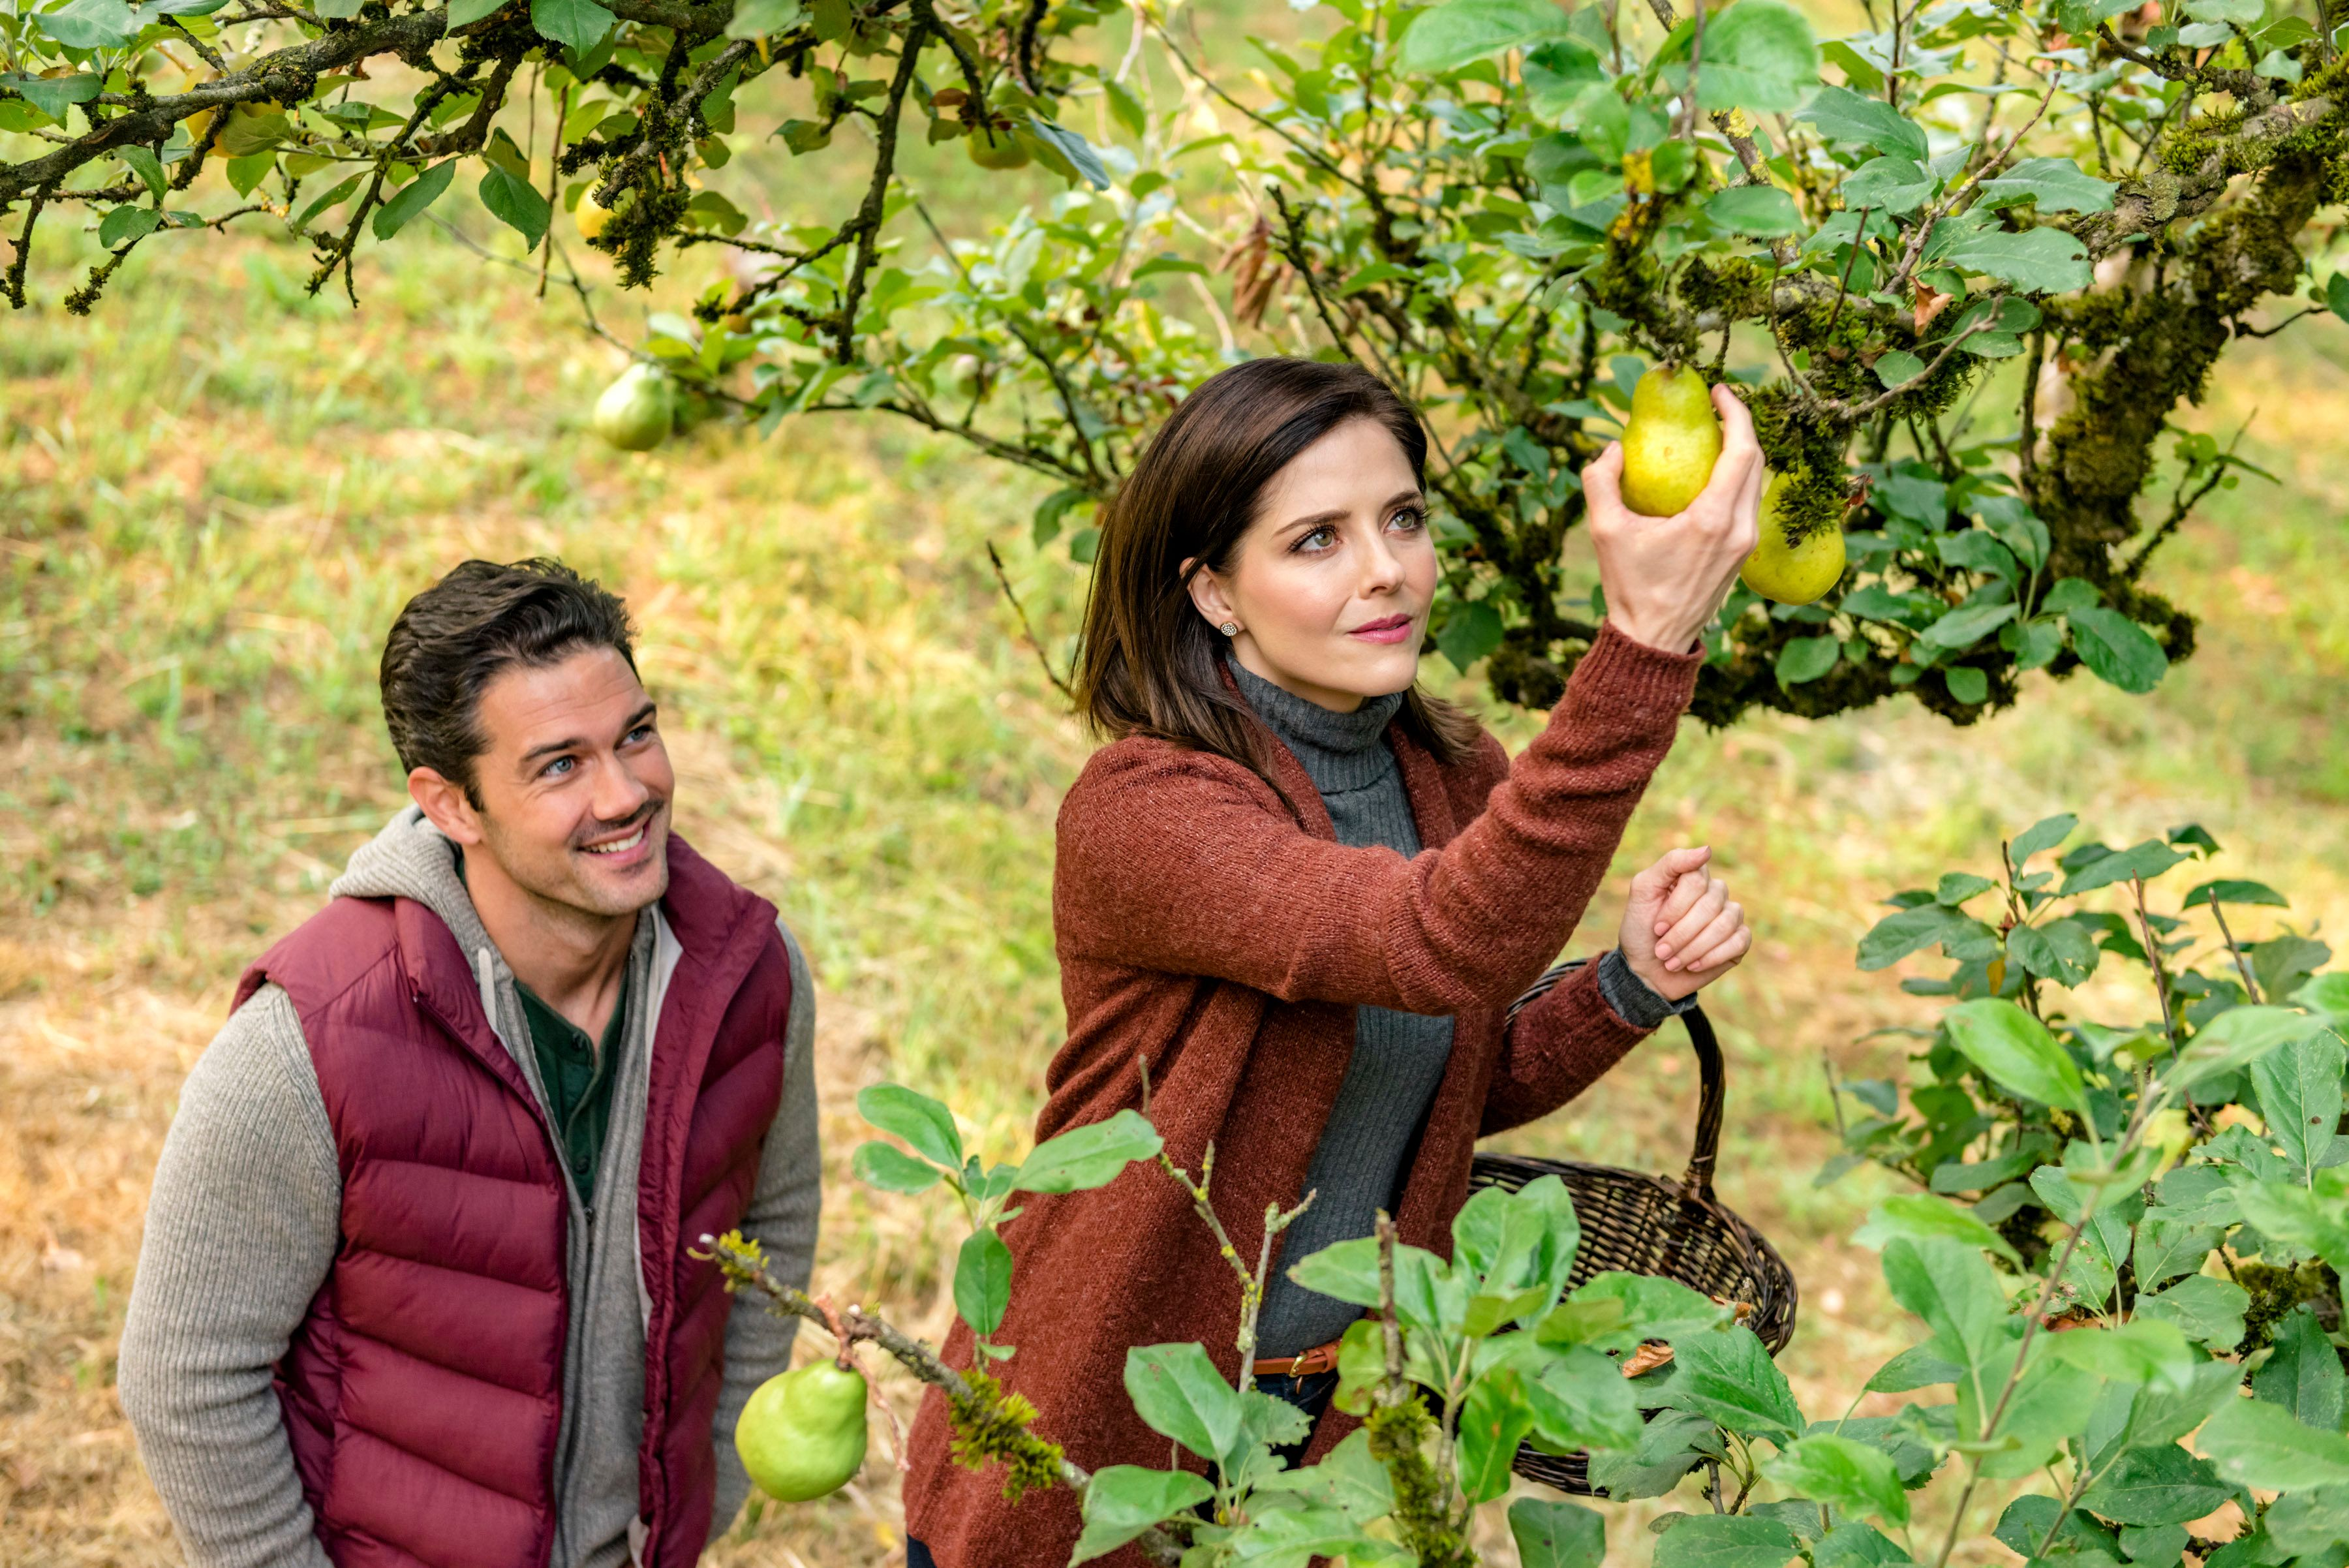 Autumn Hallmark Movies Are Horny For Harvests (And The Landowning